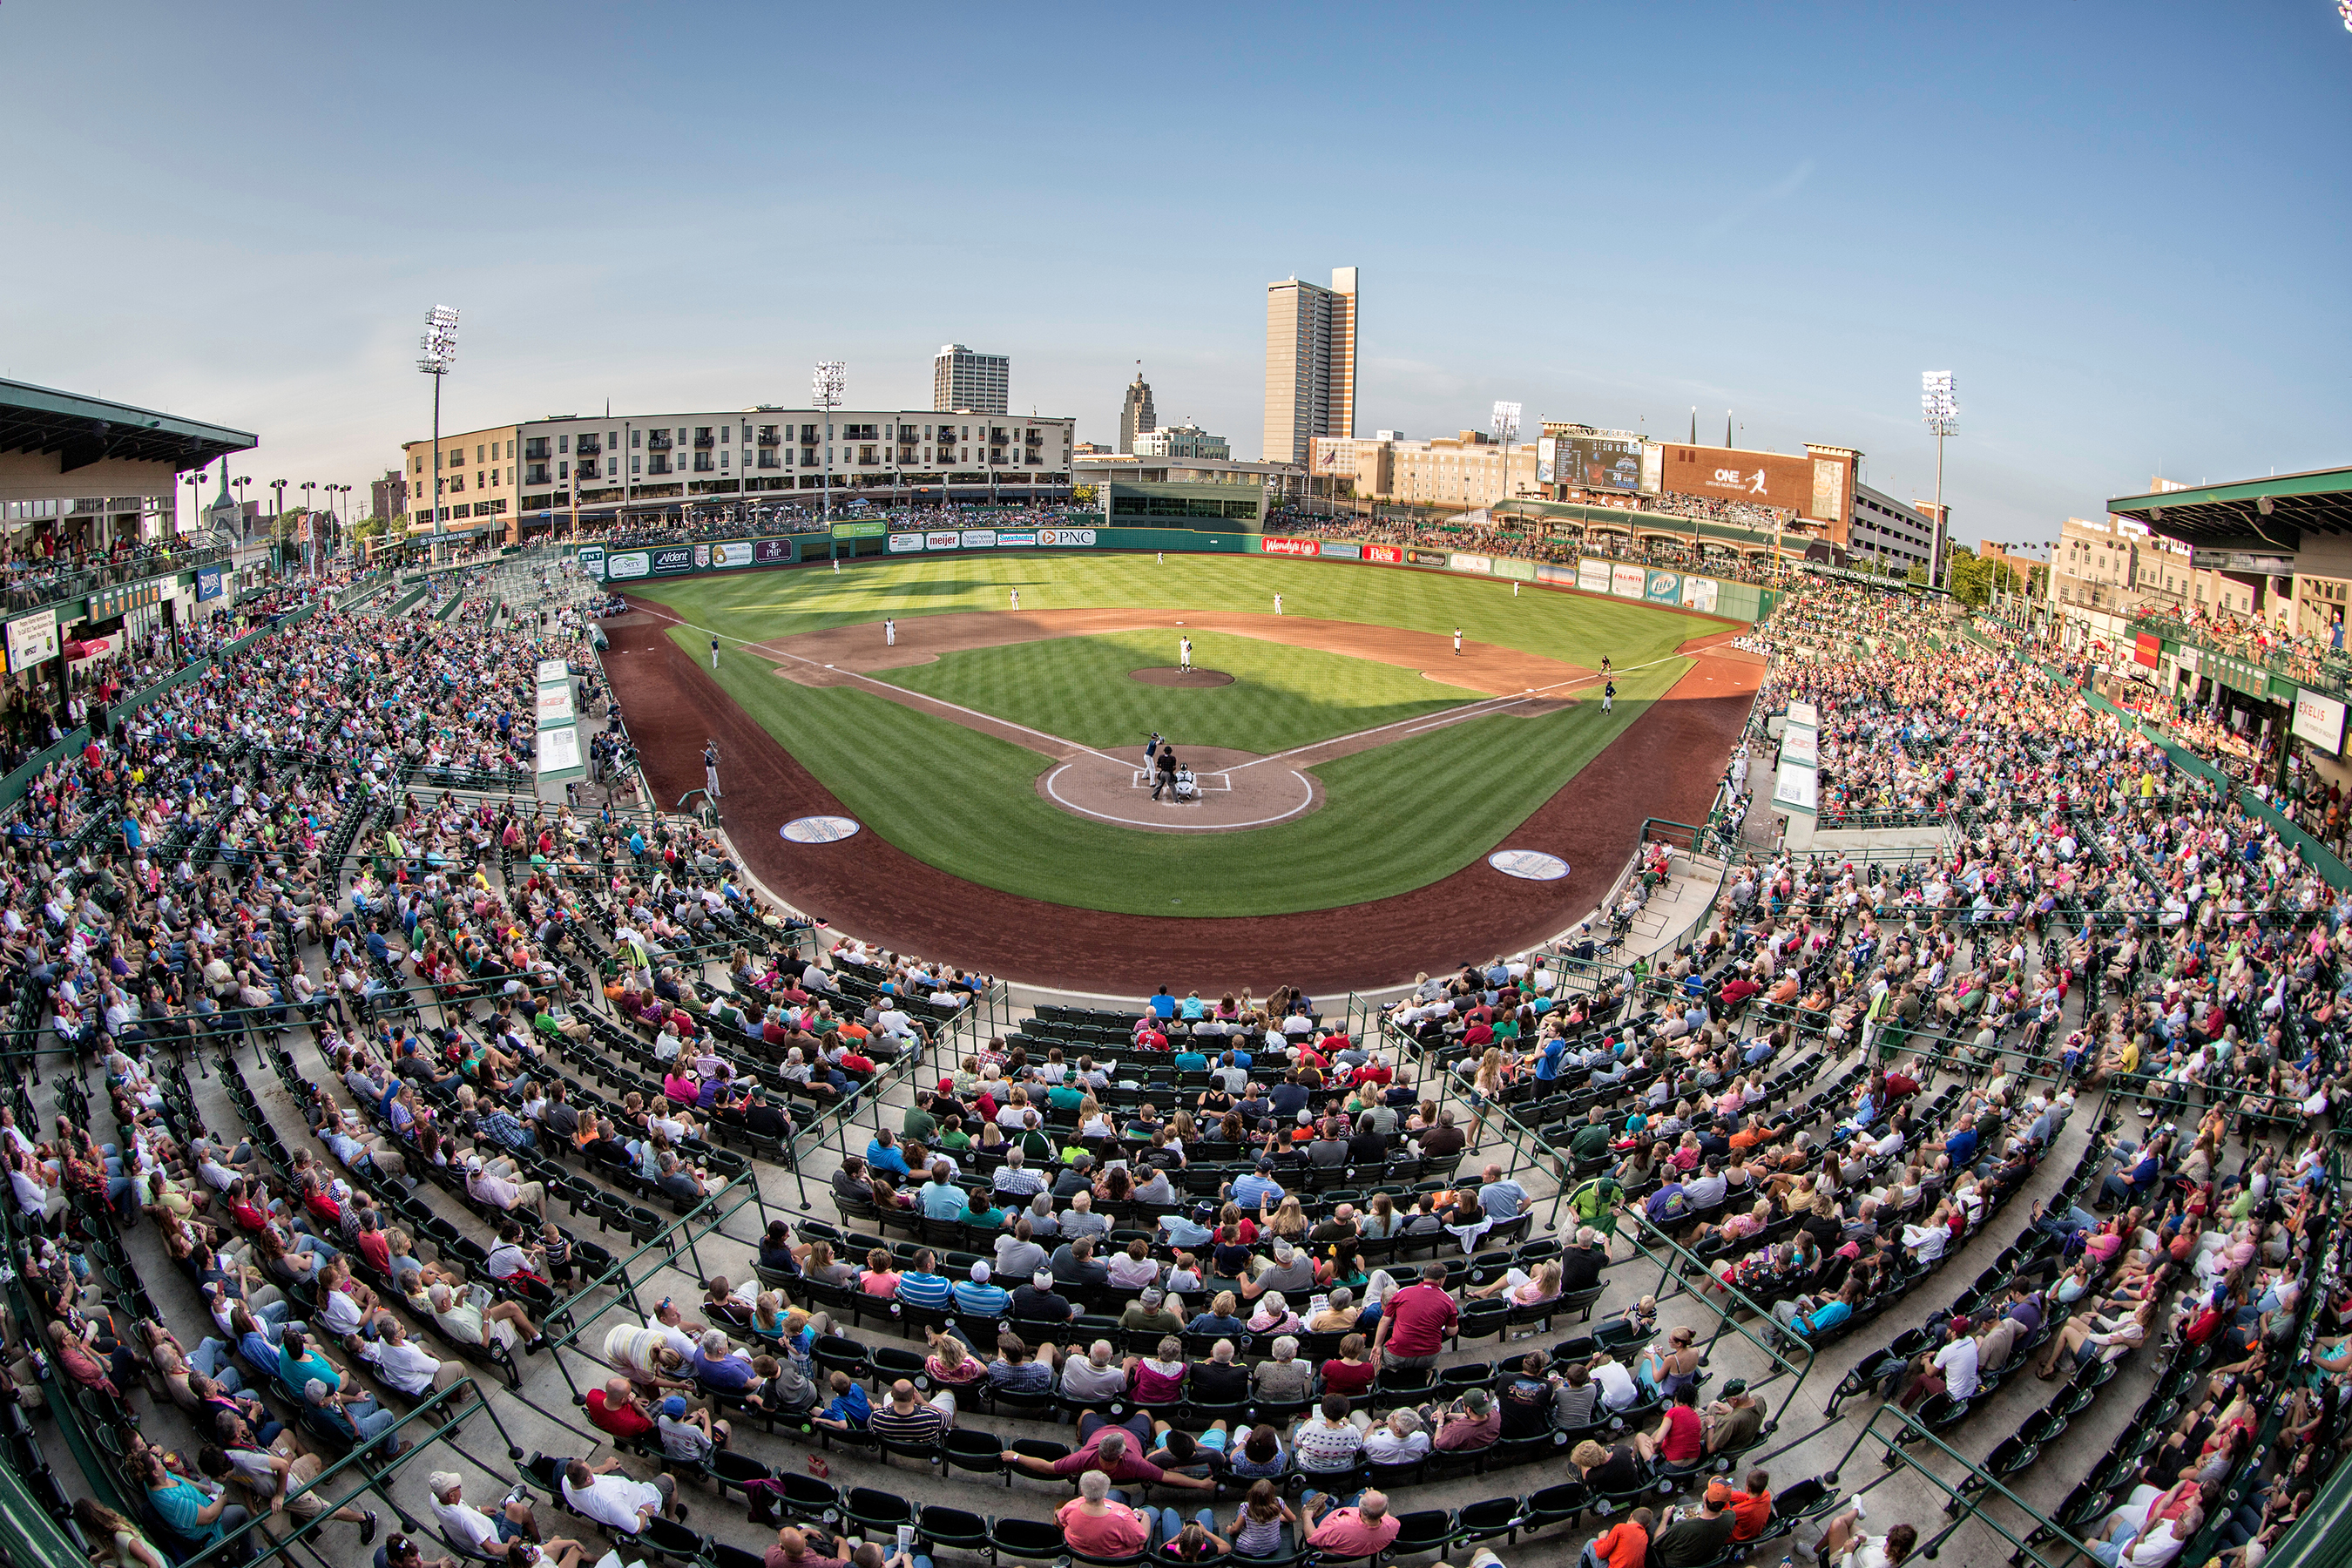 Enjoy taking in a TinCaps baseball game at Parkview Field, complete with a breathtaking view of downtown Fort Wayne.